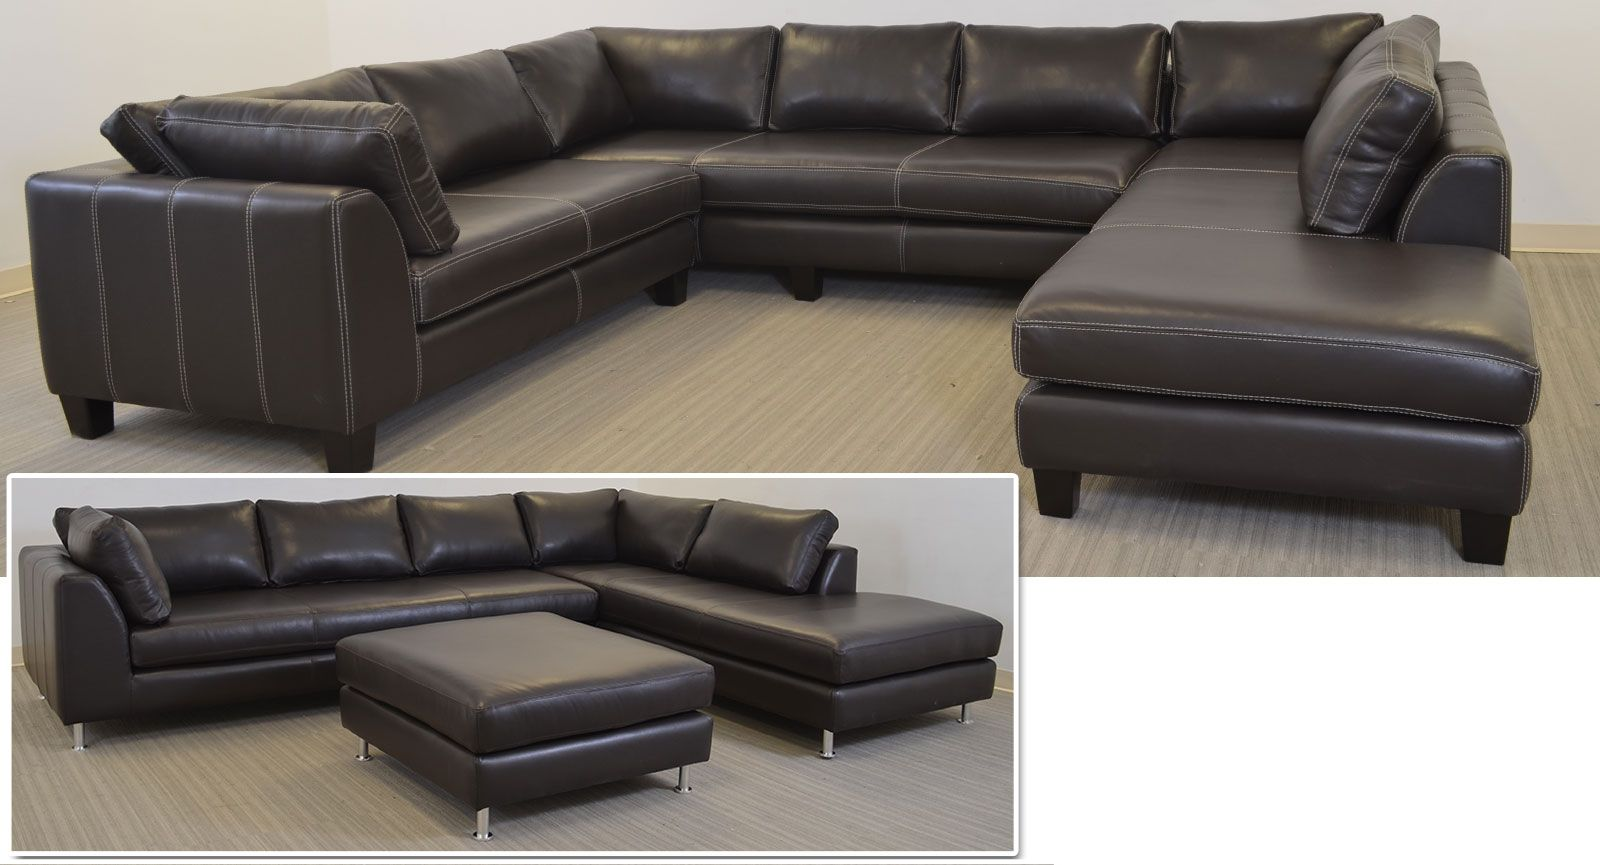 vintage leather sofa company prestige reviews alexandria the we can custom build this for you in multiple configurations and imported leathers